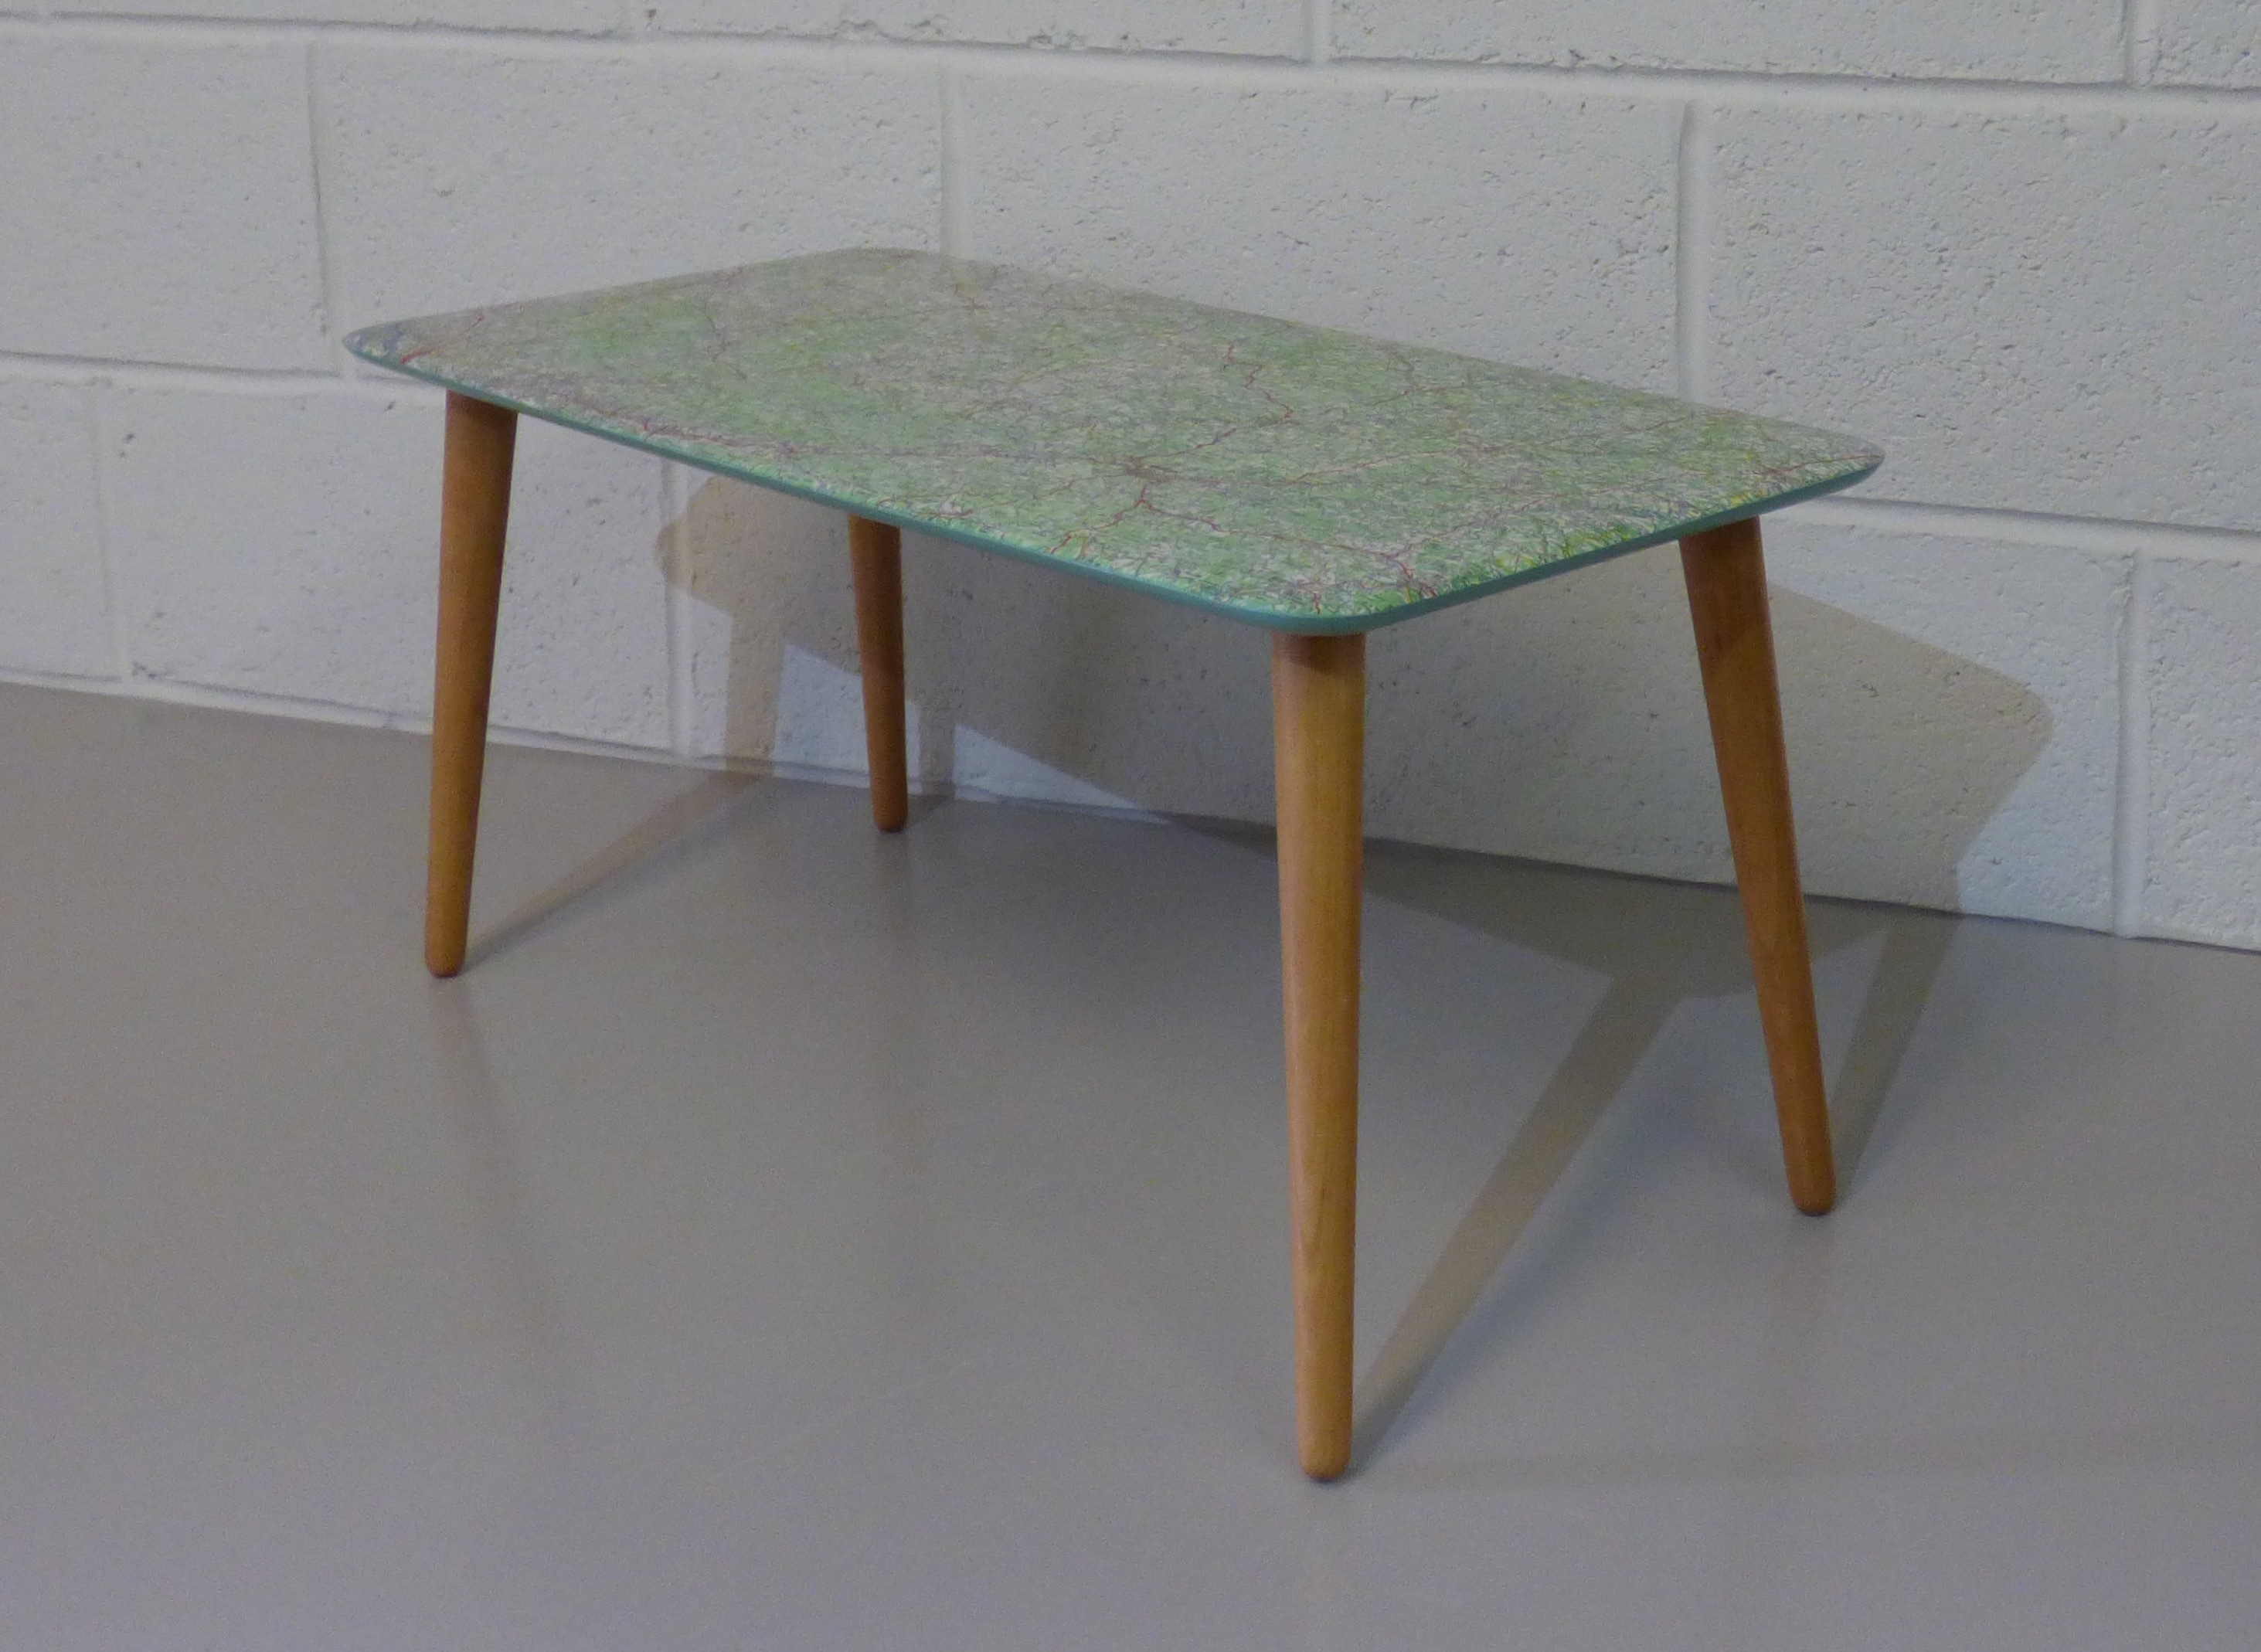 fab-retro-mid-century-coffee-table-upcycled-using-vintage-french-road-map-and-farrow-ball-paint.jpg